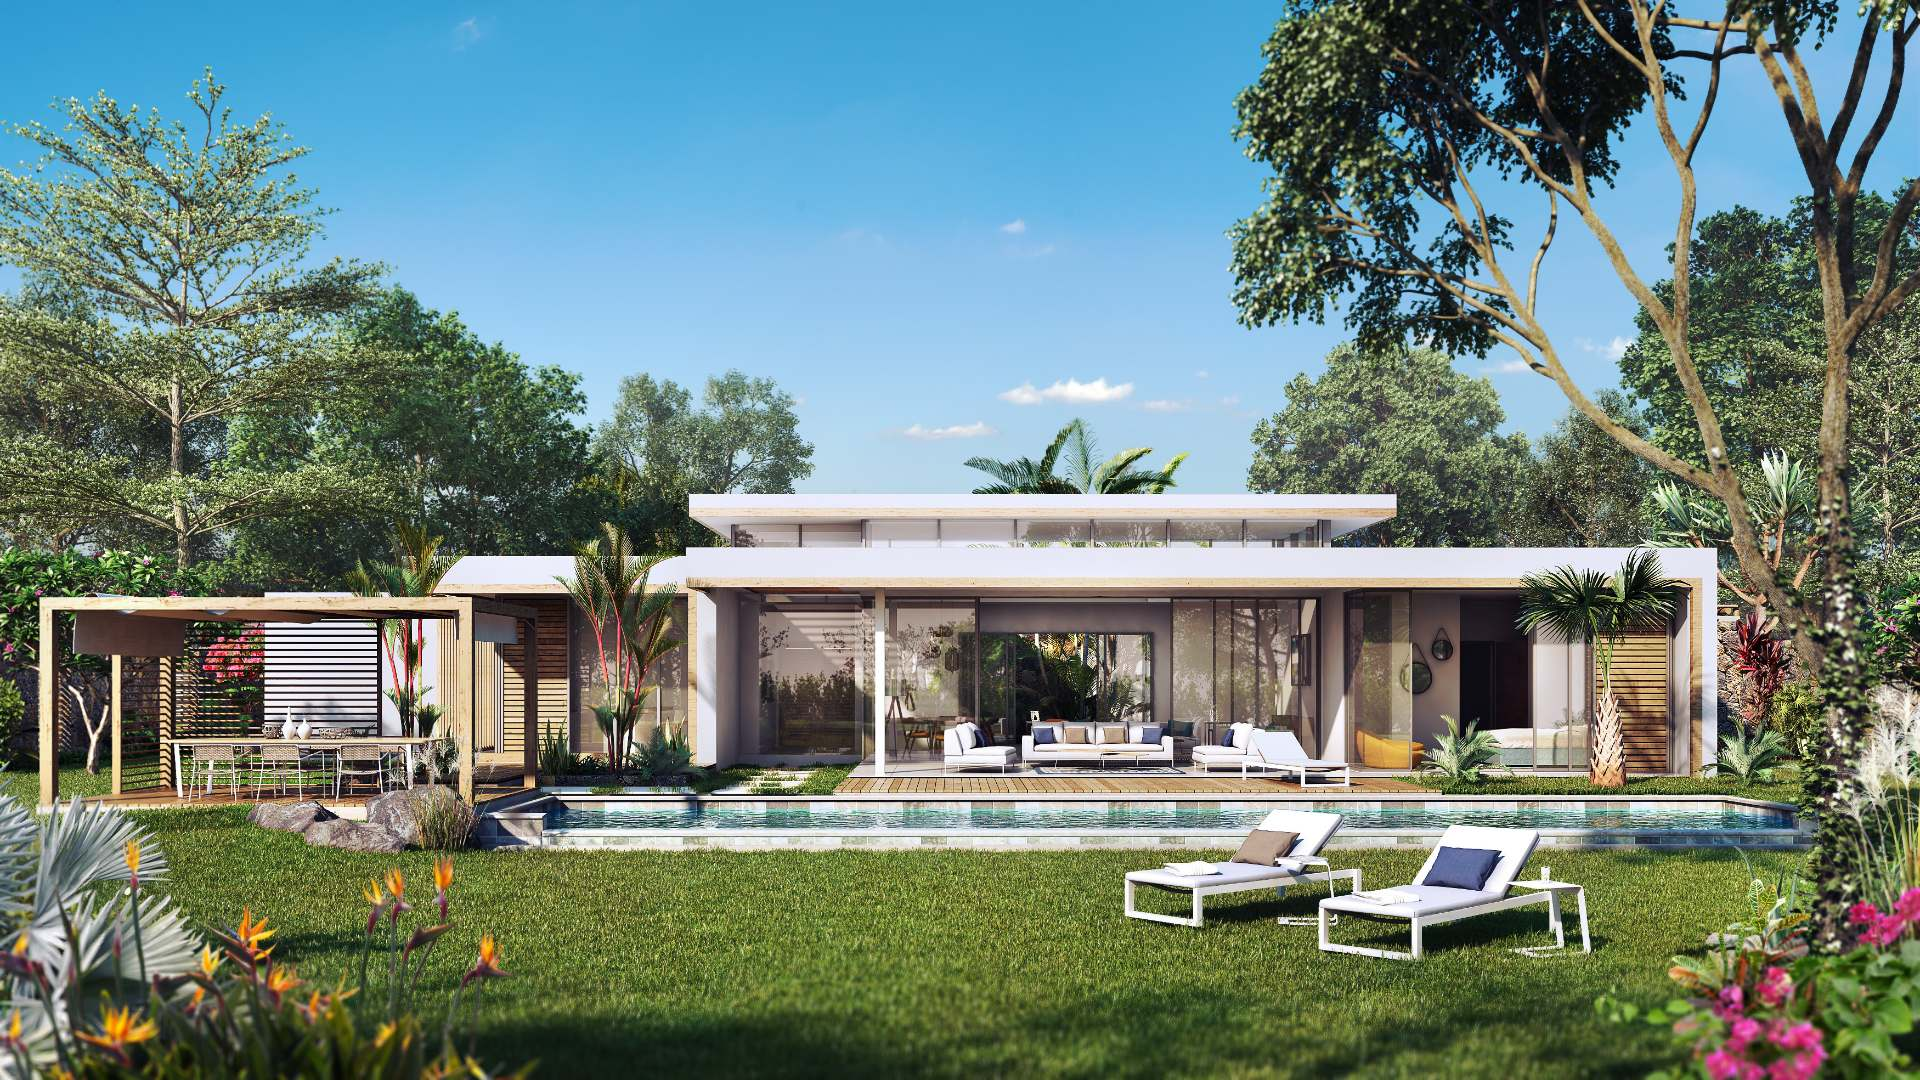 6 Bedroom House For Sale in Tamarin